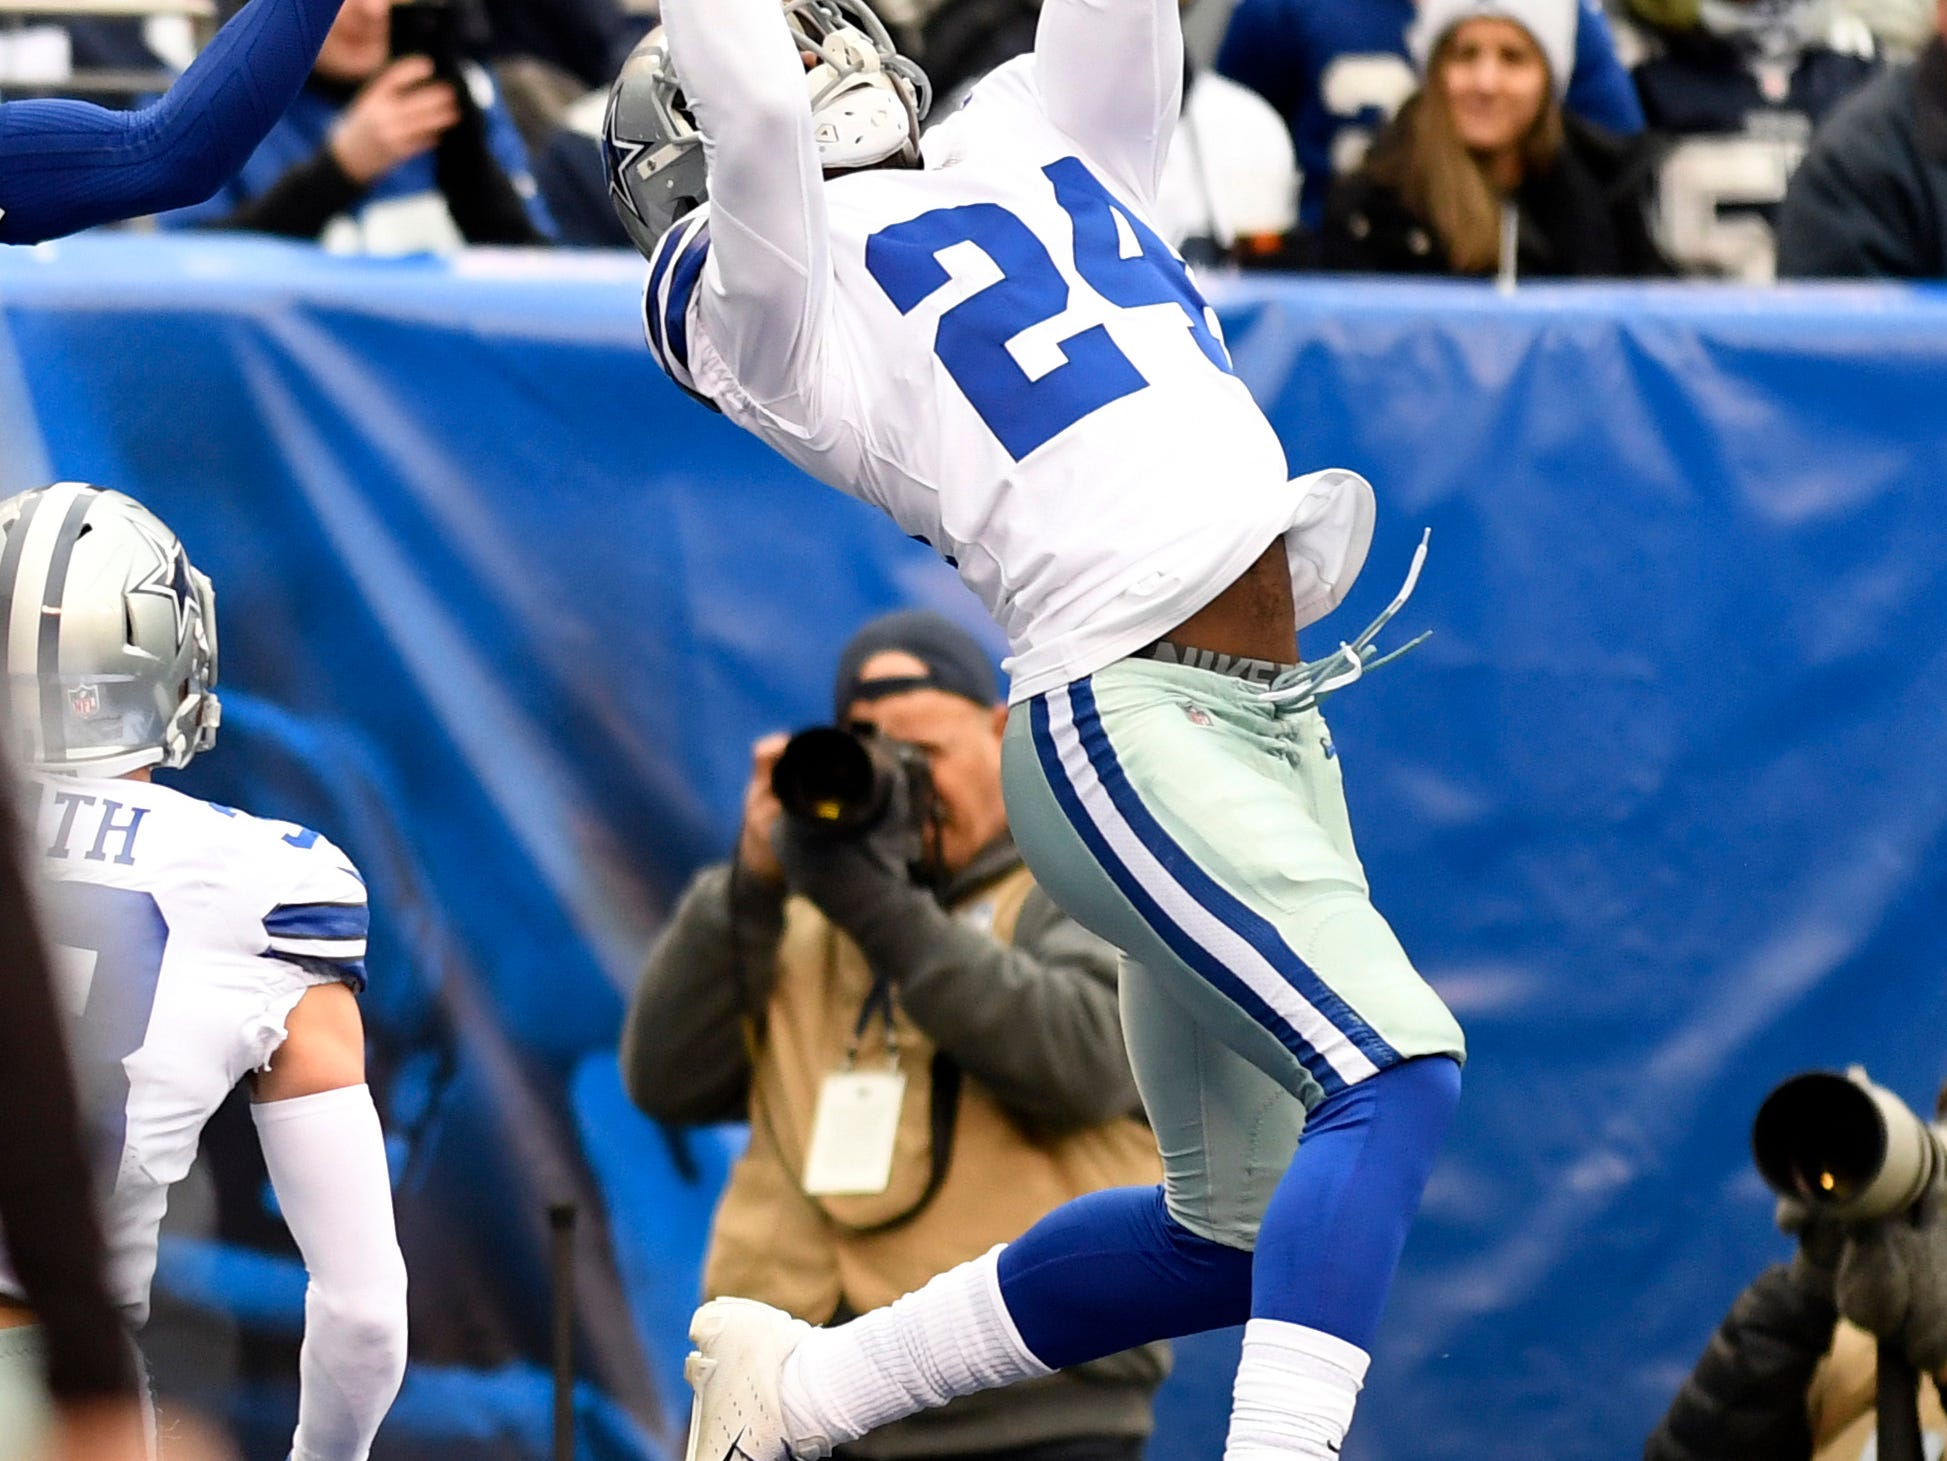 Dallas Cowboys cornerback Chidobe Awuzie (24) intercepts a pass intended for Giants wide receiver Sterling Shepard (not pictured) in the first half. The New York Giants face the Dallas Cowboys in the last regular season game on Sunday, Dec. 30, 2018, in East Rutherford.